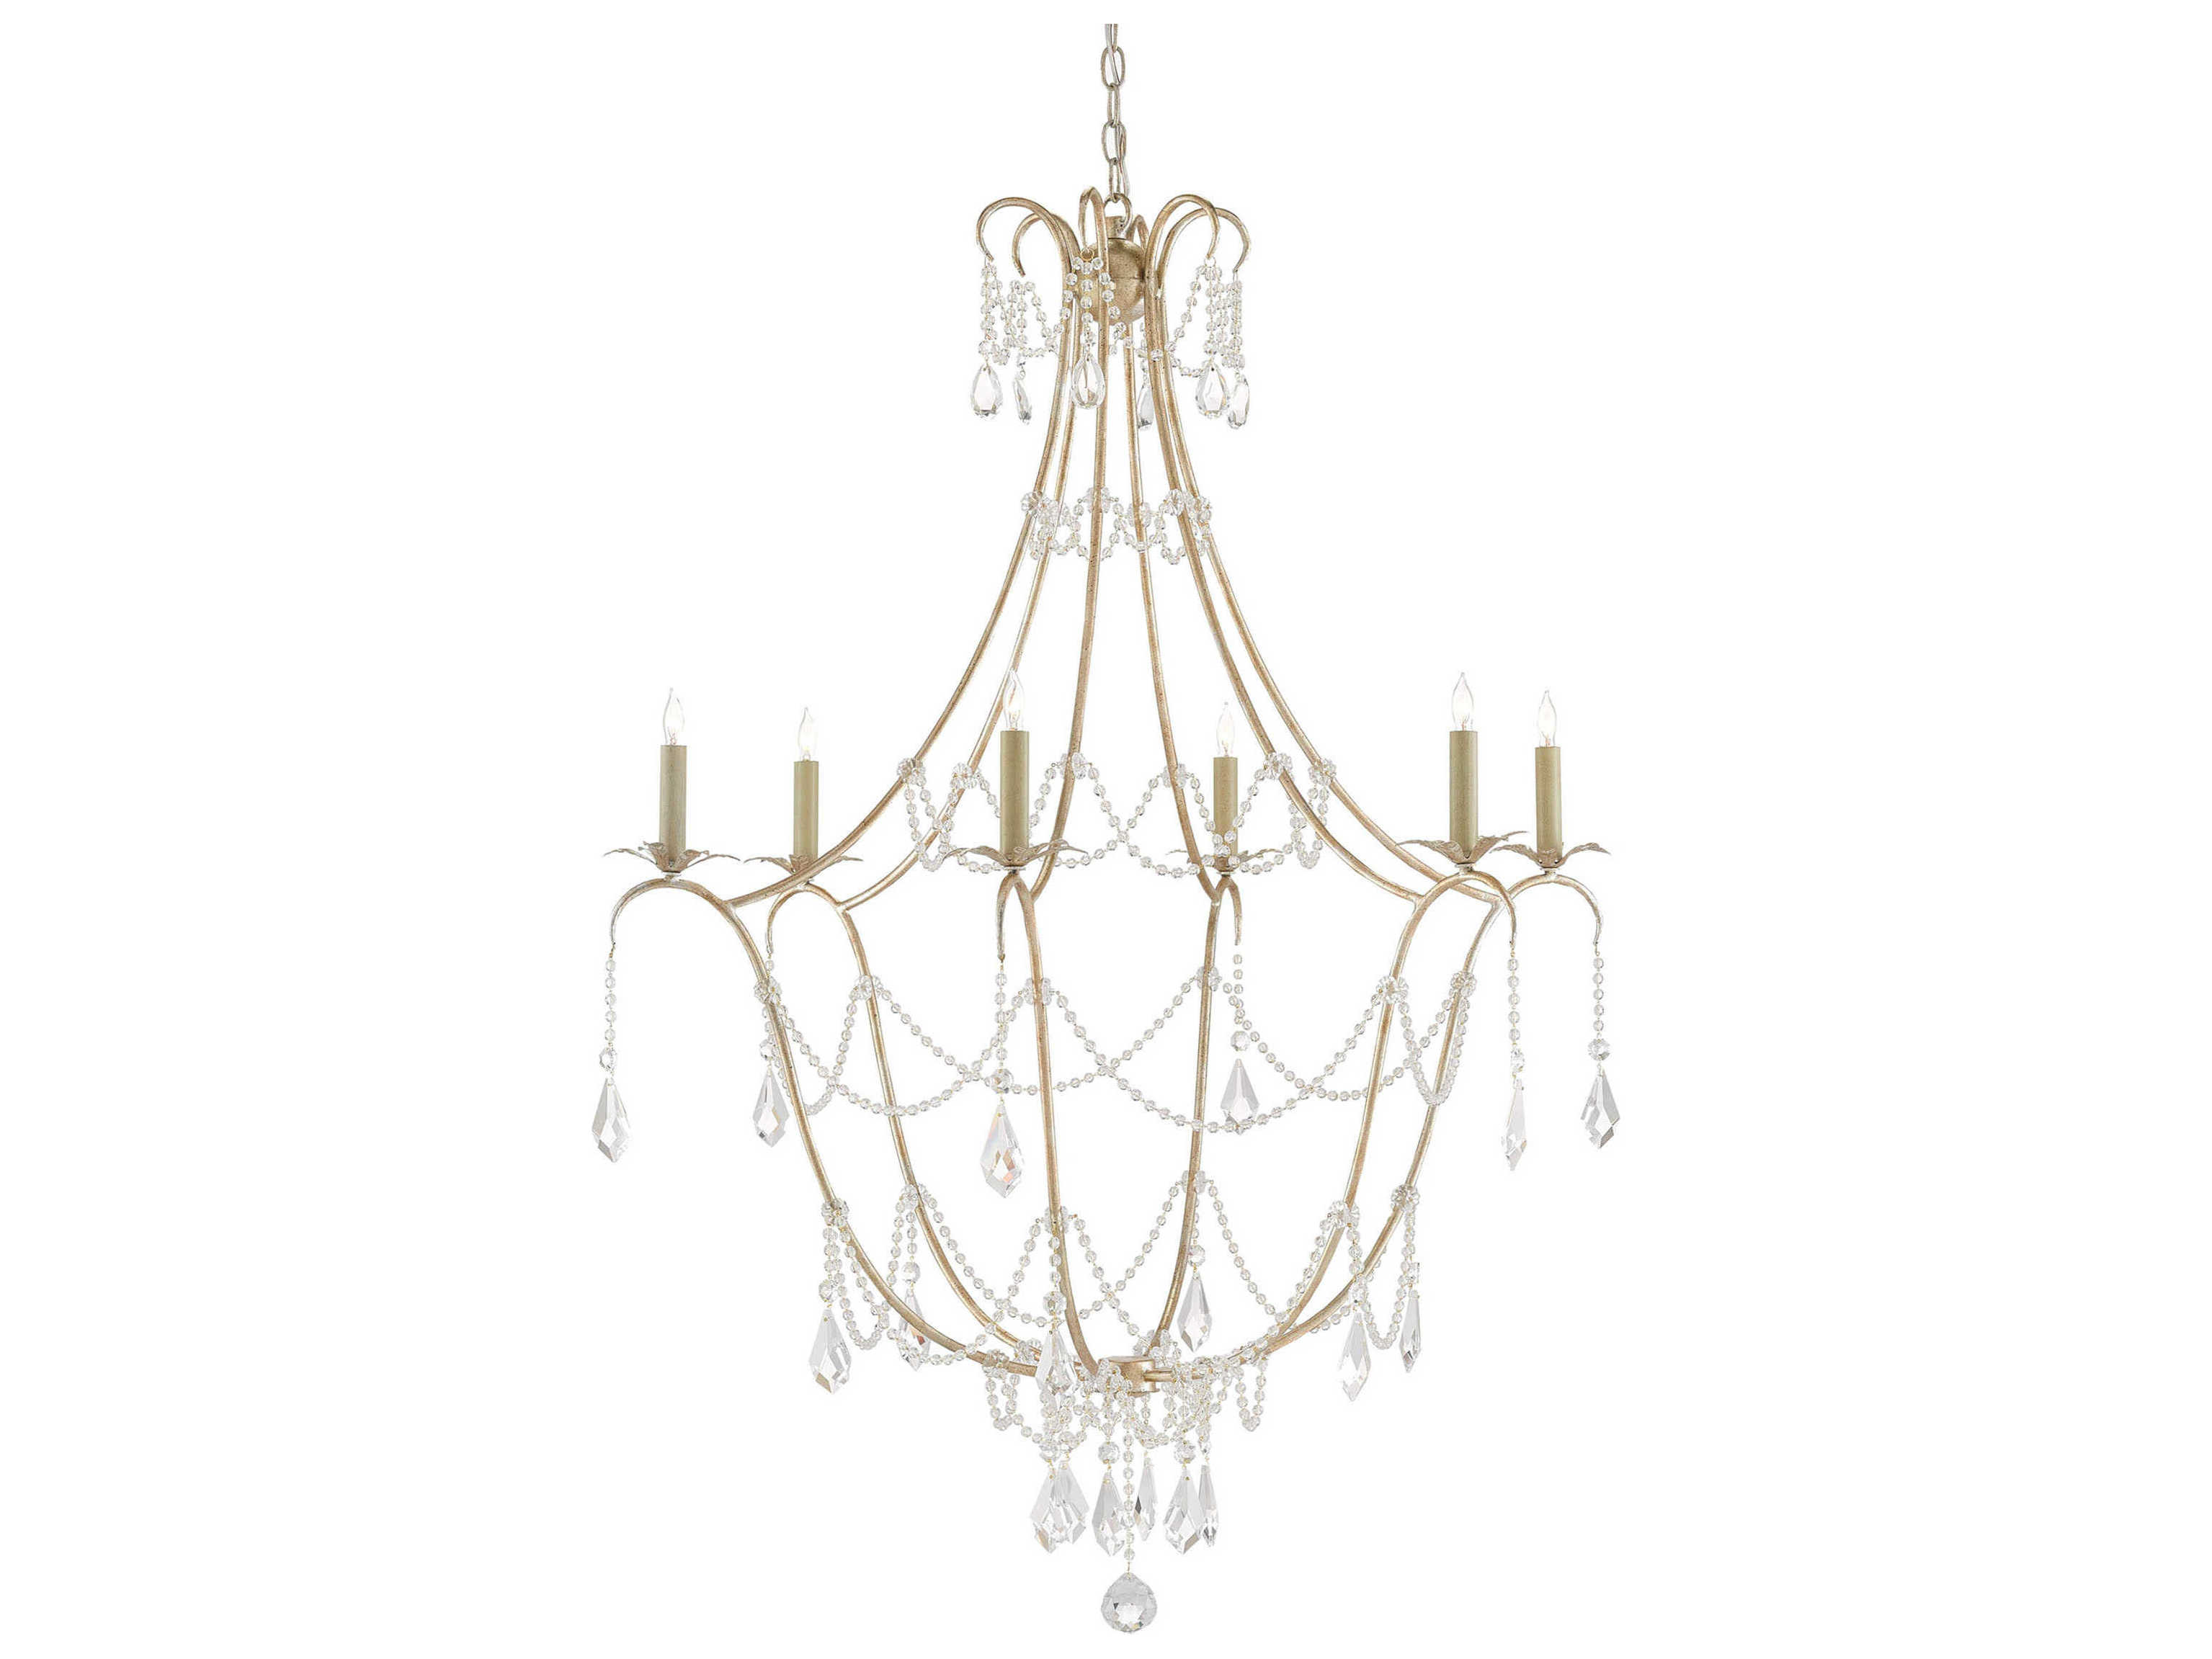 Currey And Company Lillian August Silver Granello Six Light 35 5 Wide Elizabeth Chandelier